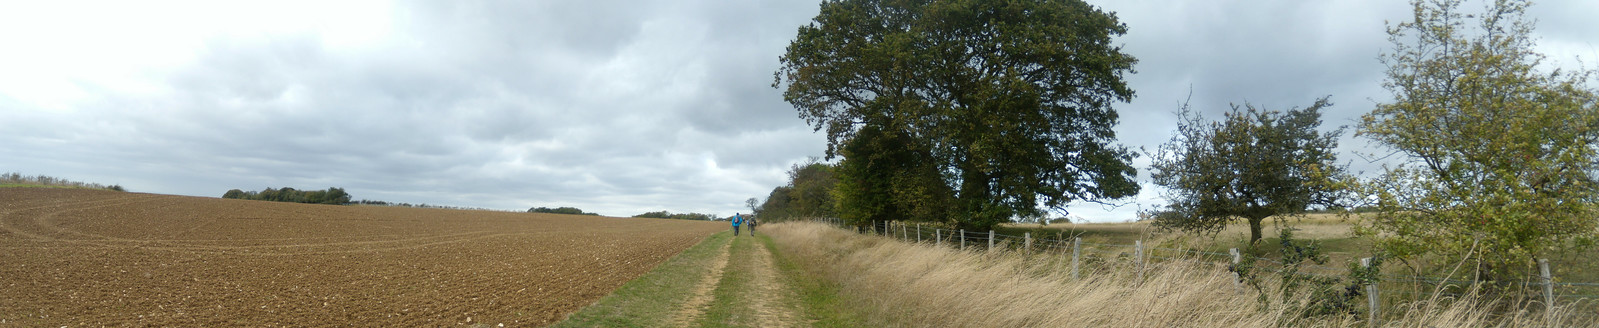 Panorama Sandling to Wye